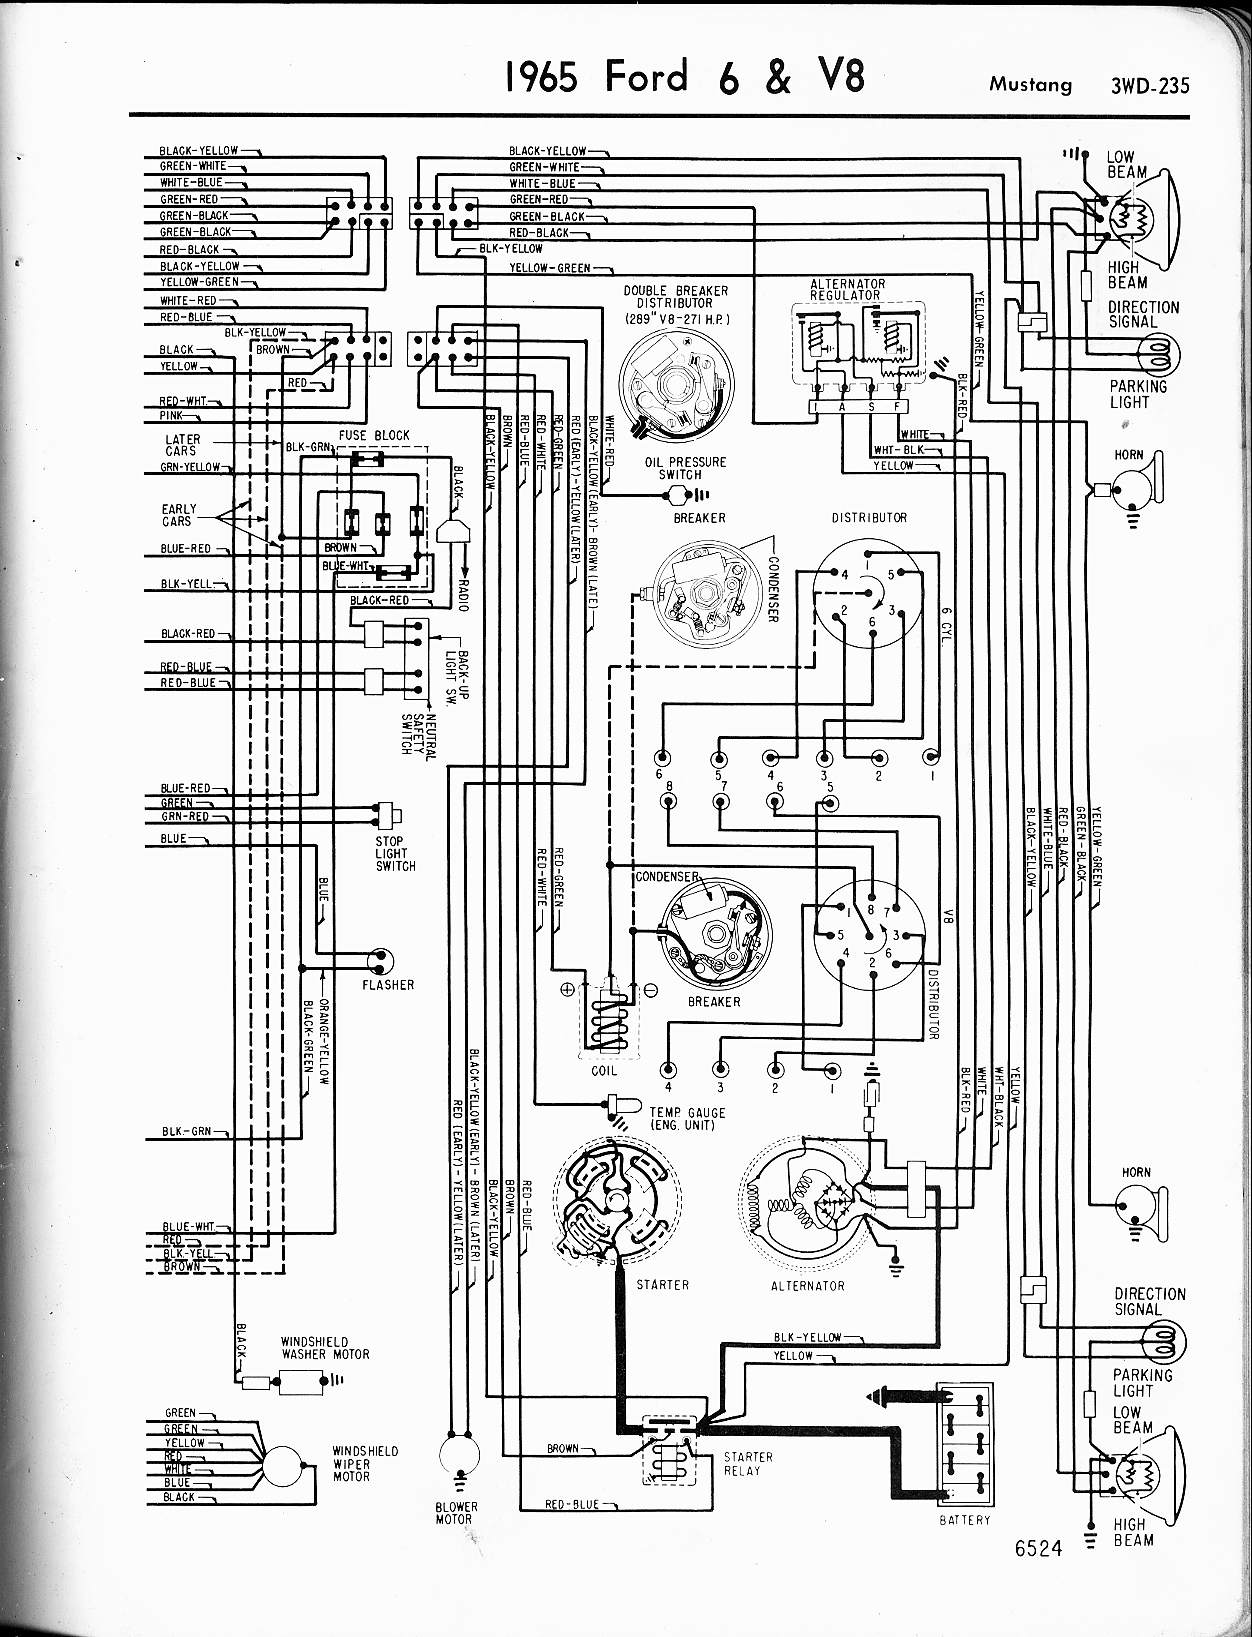 MWire5765 235 57 65 ford wiring diagrams 65 mustang turn signal switch wiring diagram at panicattacktreatment.co